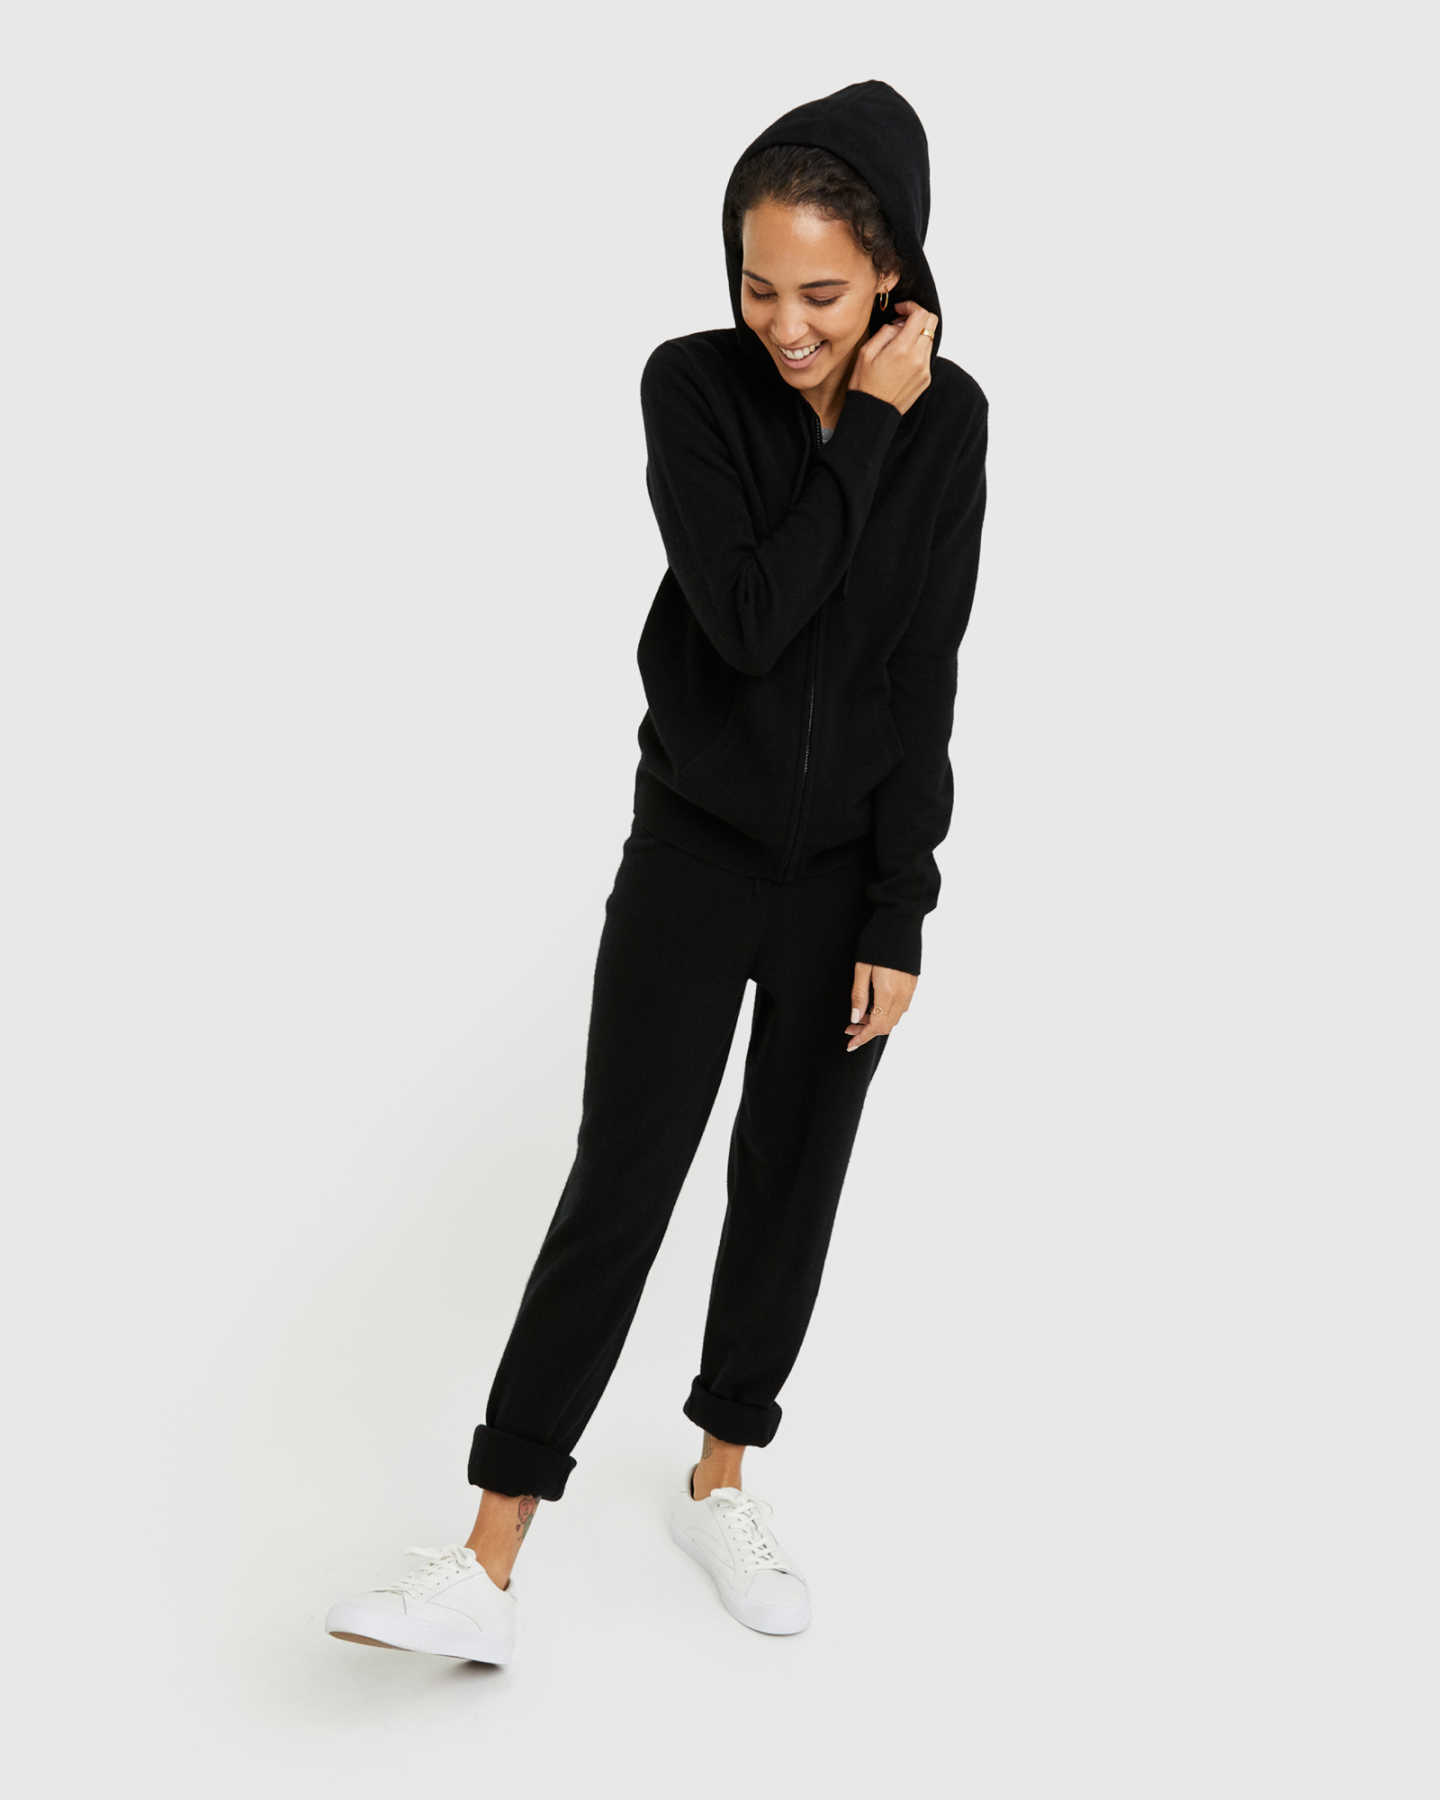 Woman wearing black cashmere zip hoodie and matching cashmere sweatpants smiling